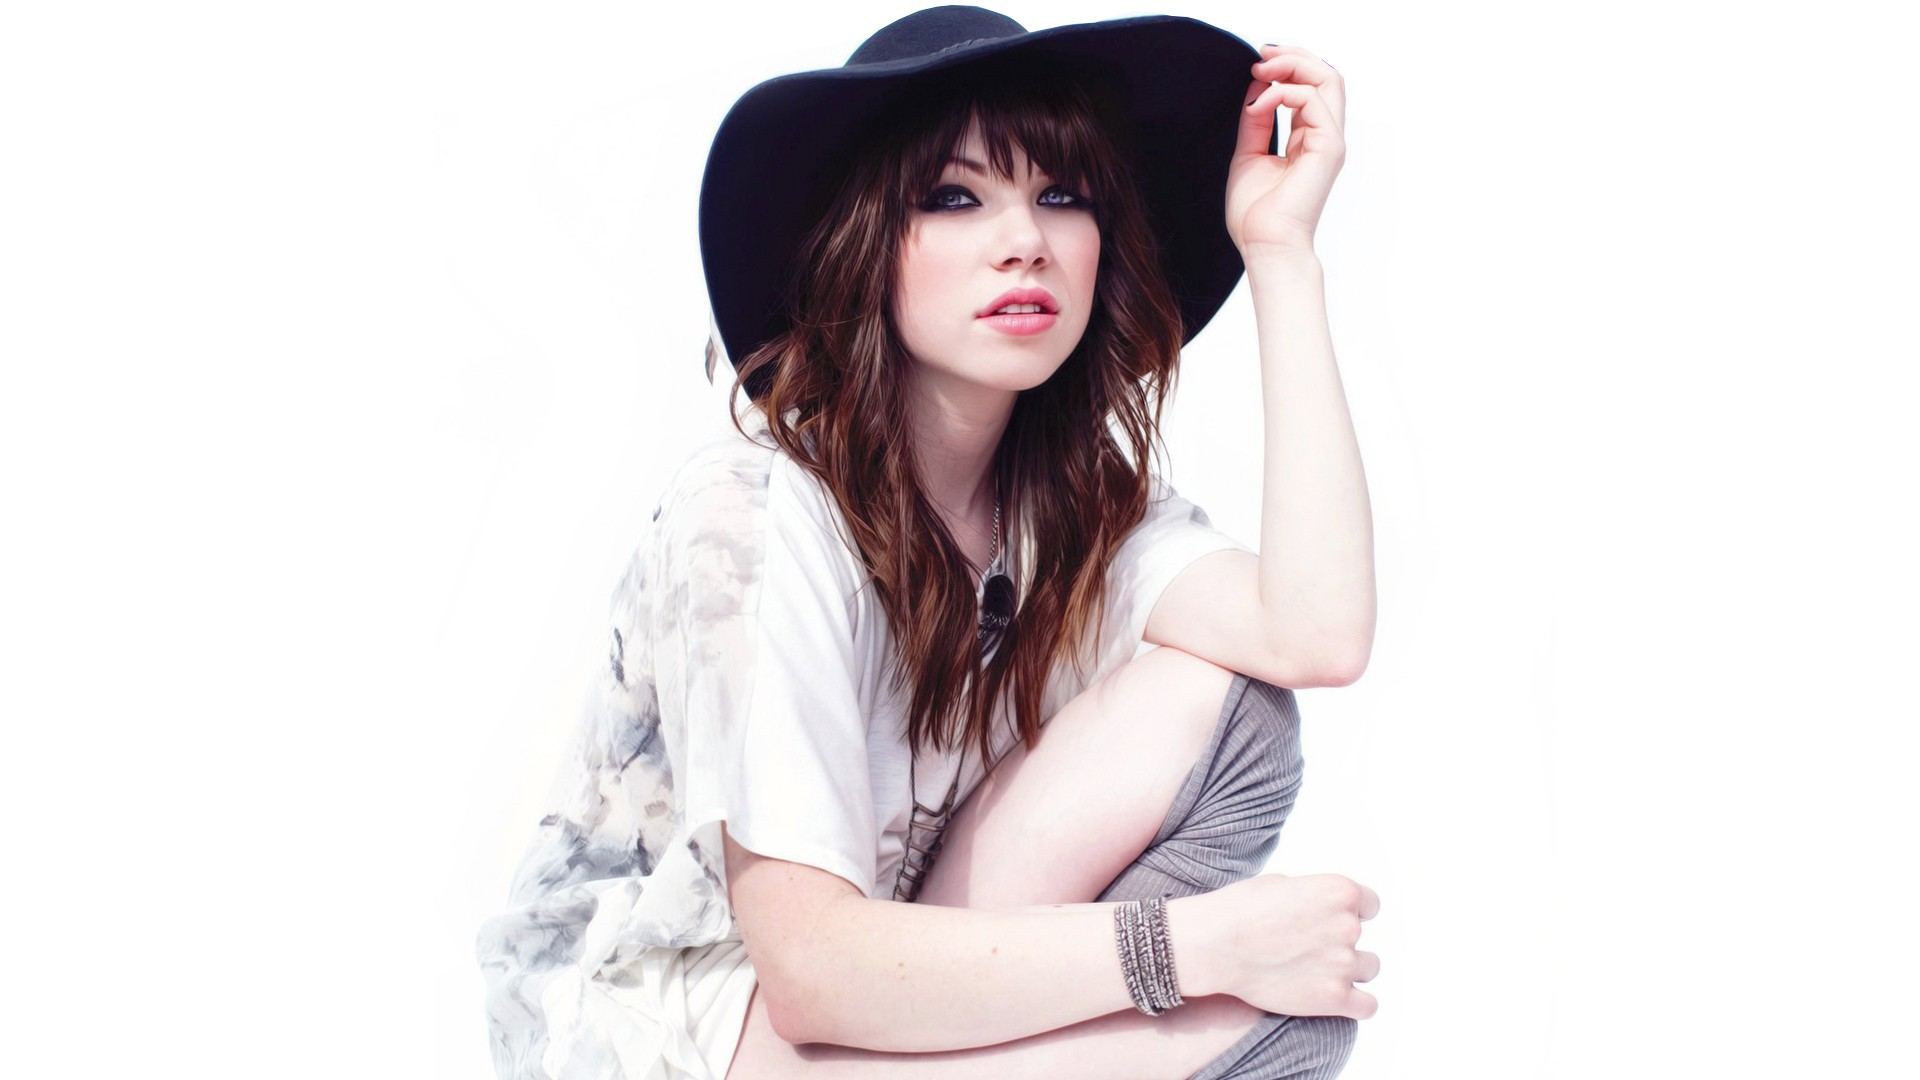 Stunning Carly Rae Jepsen Wallpaper